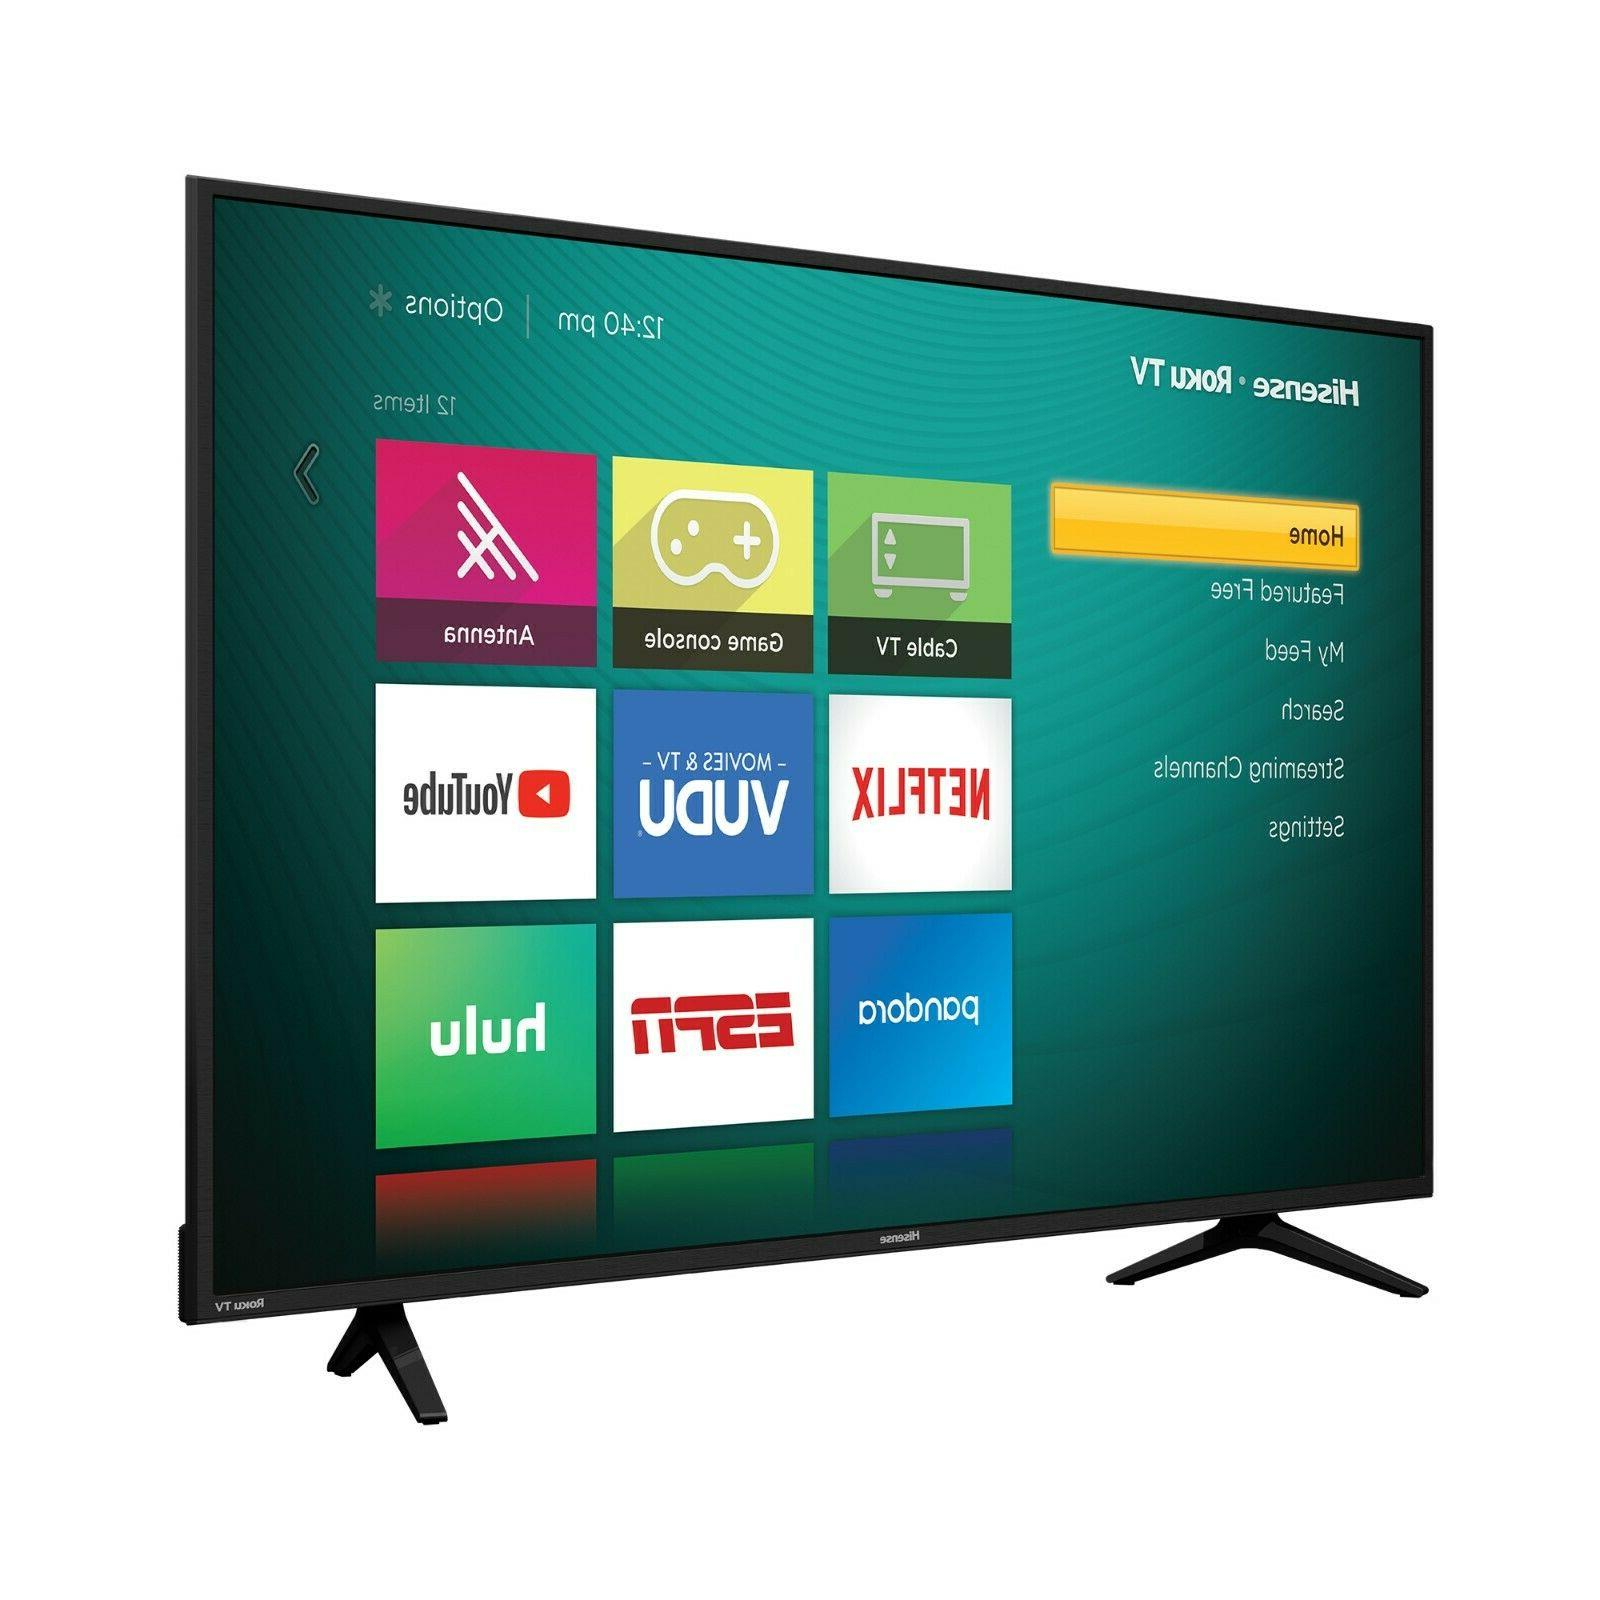 Hisense 65R6E 65 inch 4K Ultra HD Smart TV